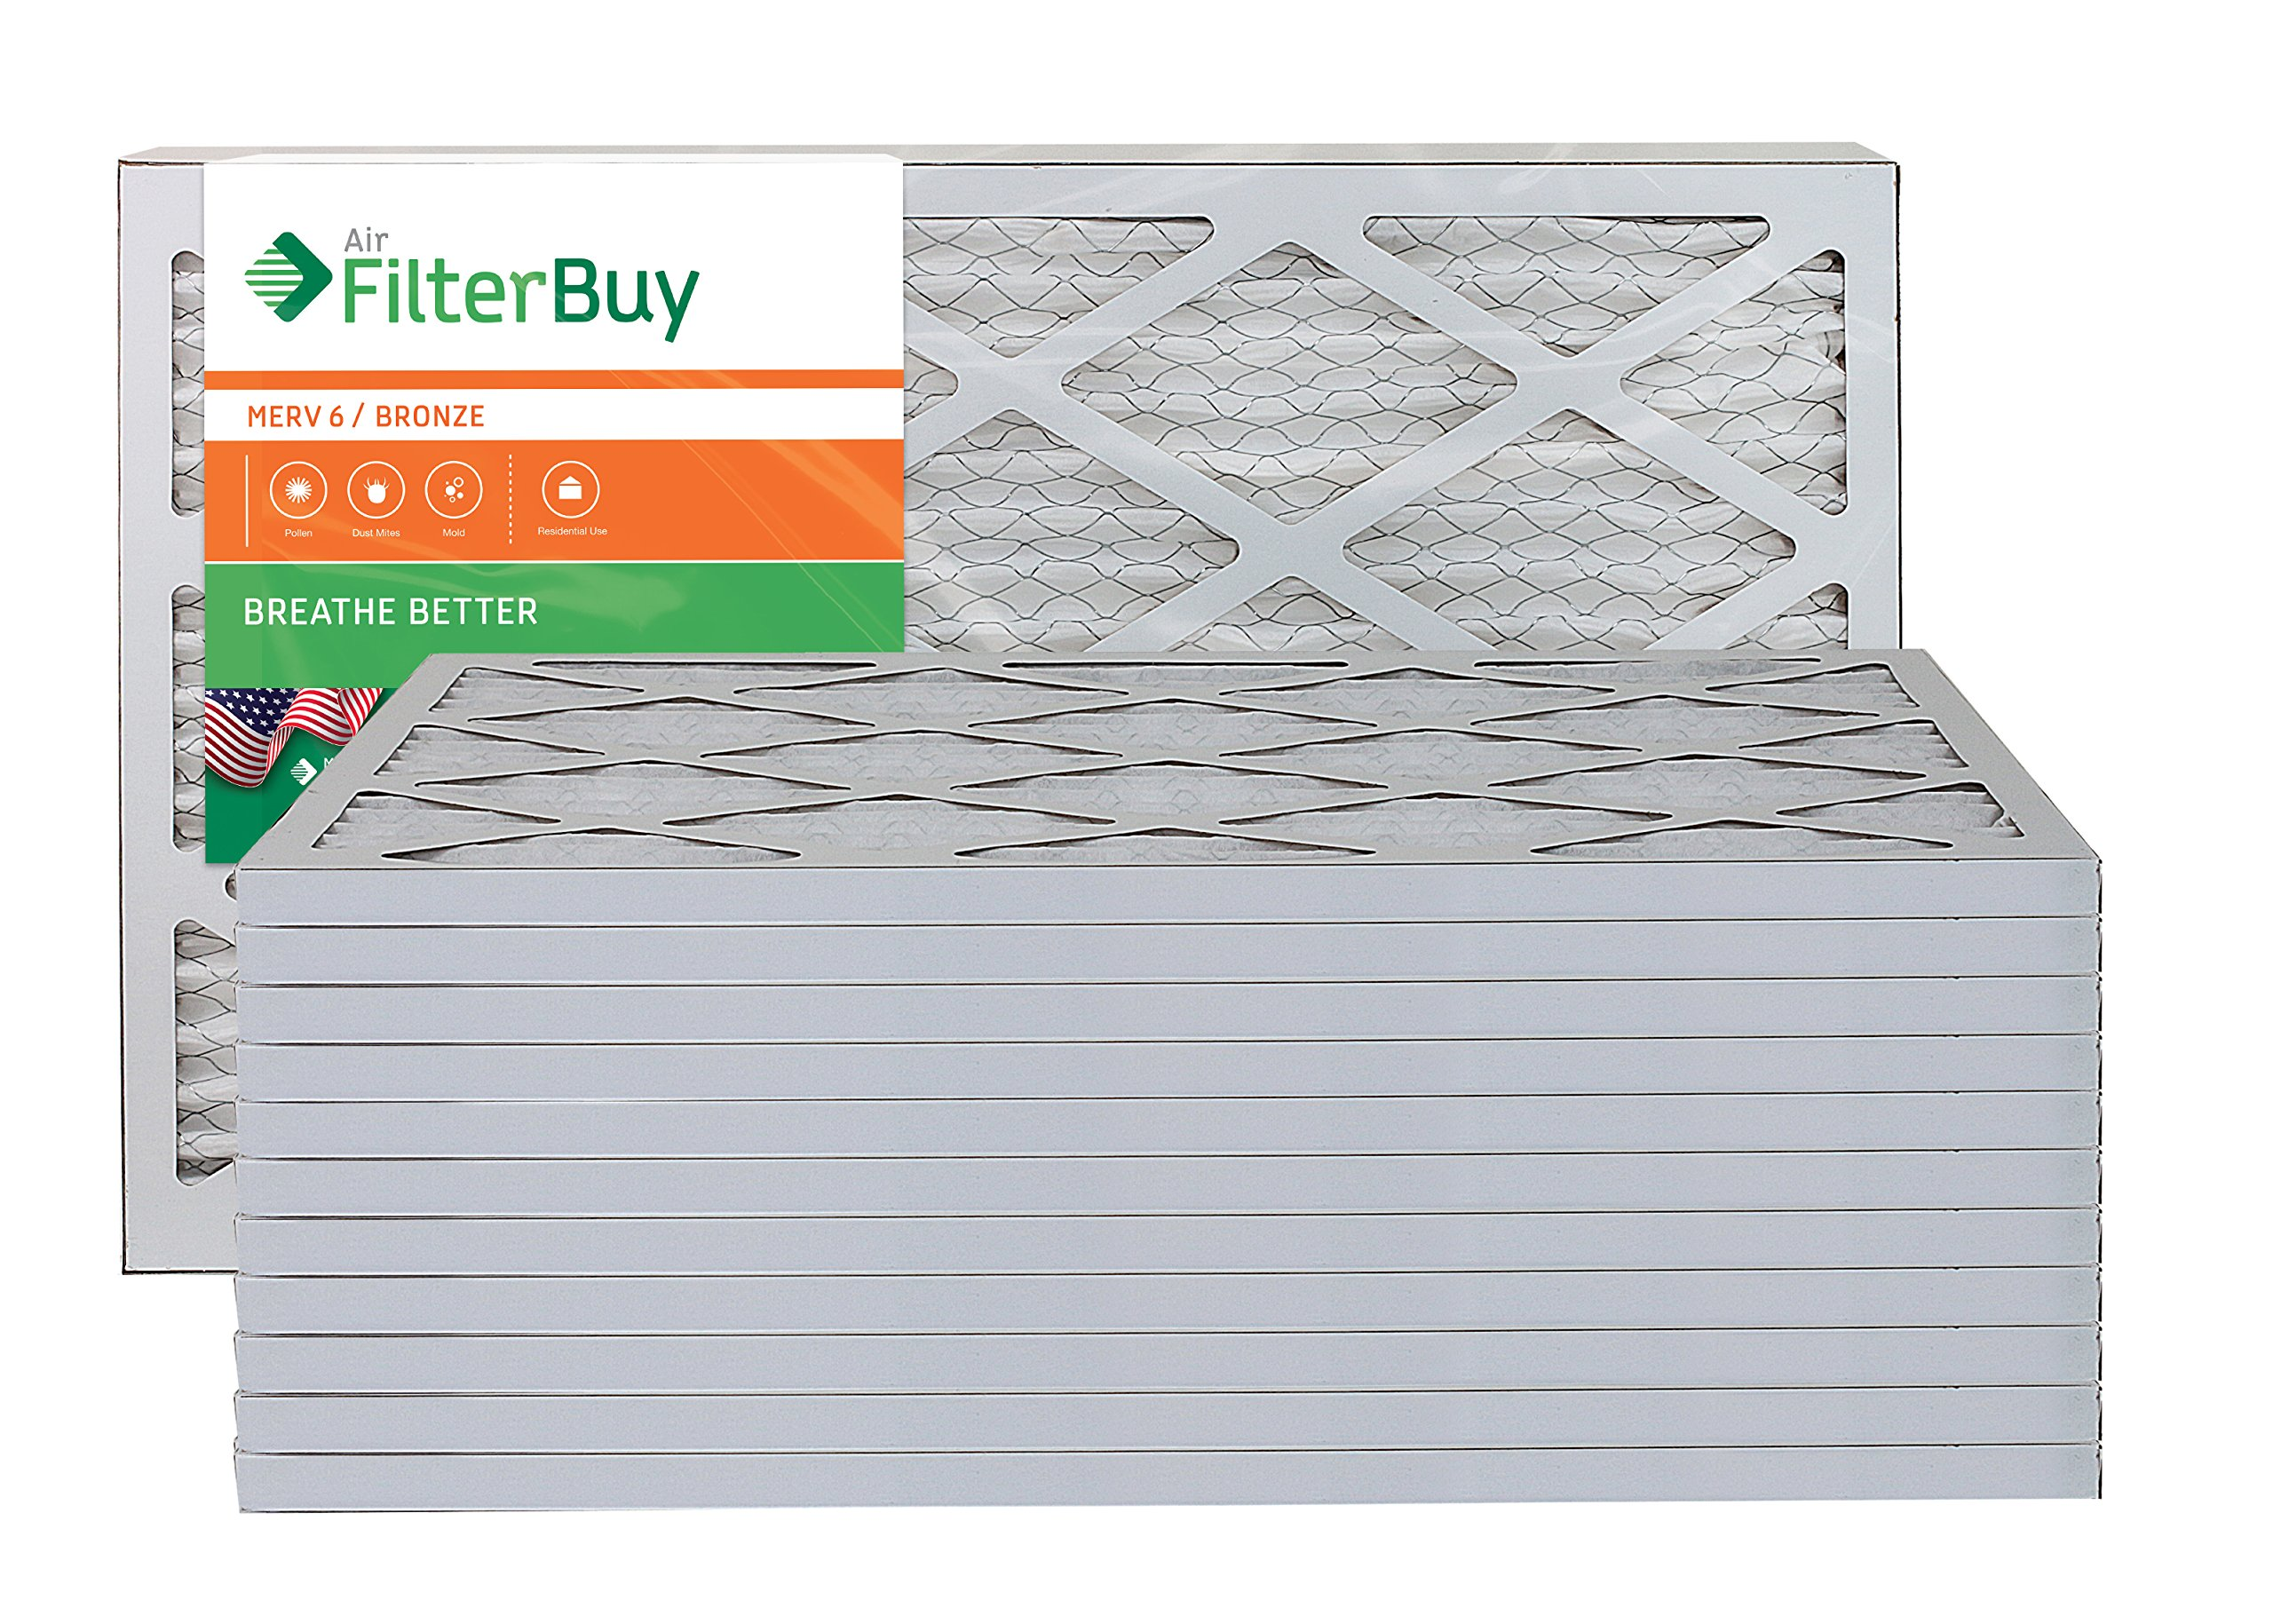 AFB Bronze MERV 6 15x20x1 Pleated AC Furnace Air Filter. Pack of 12 Filters. 100% produced in the USA.